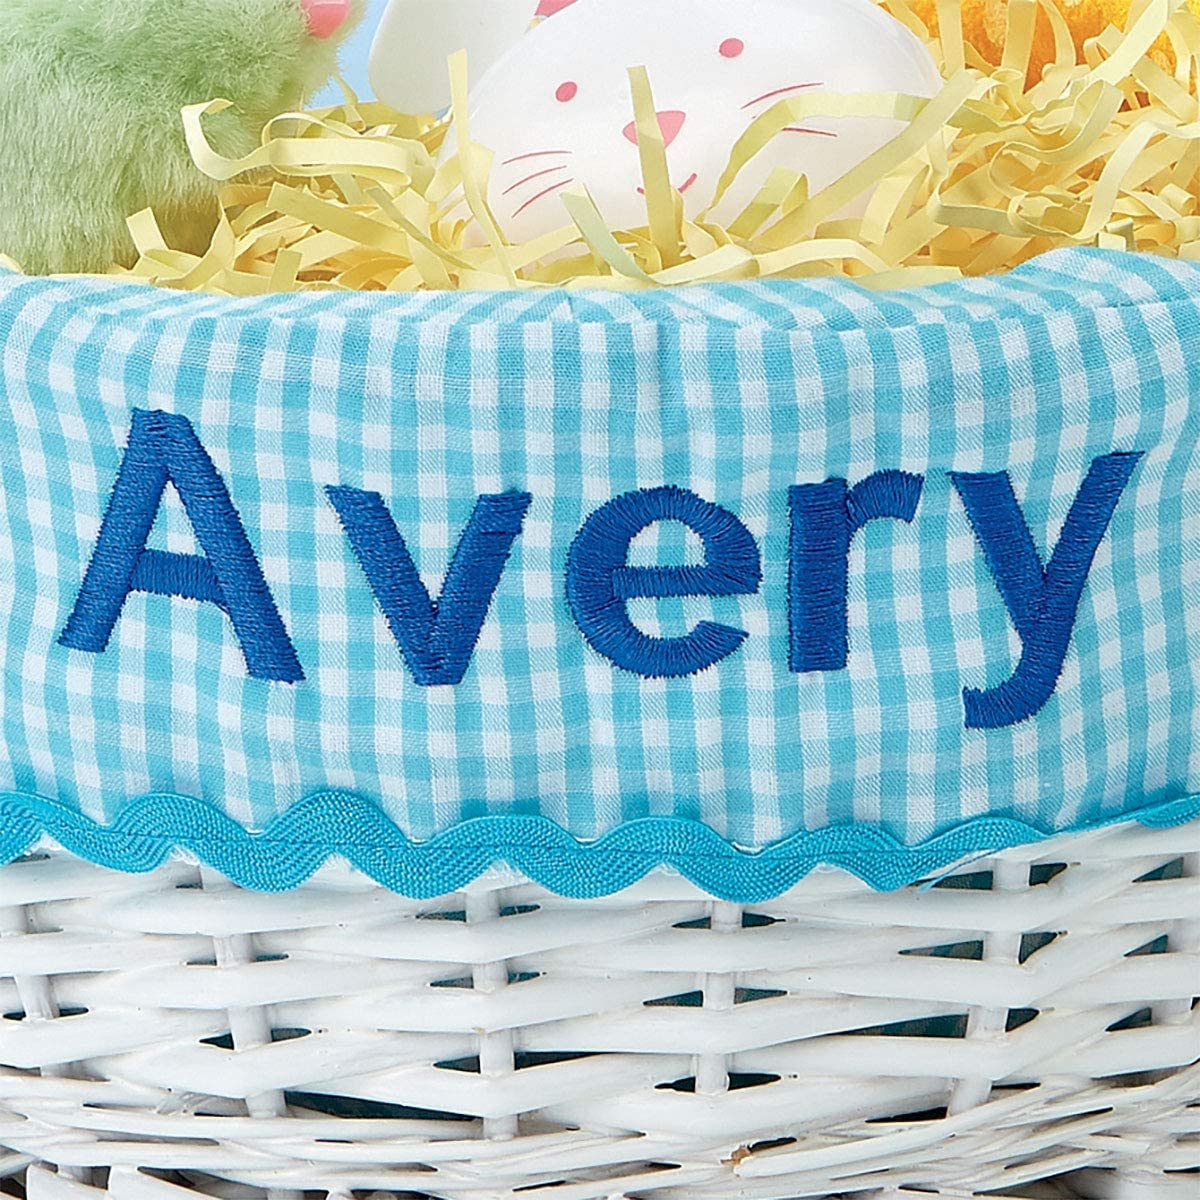 Removable Blue Liner for Girls and Boys Baby/'s First Egg Hunt Lillian Vernon Kids Personalized Wicker Easter Basket Tote 11 Inches x 14 Inches